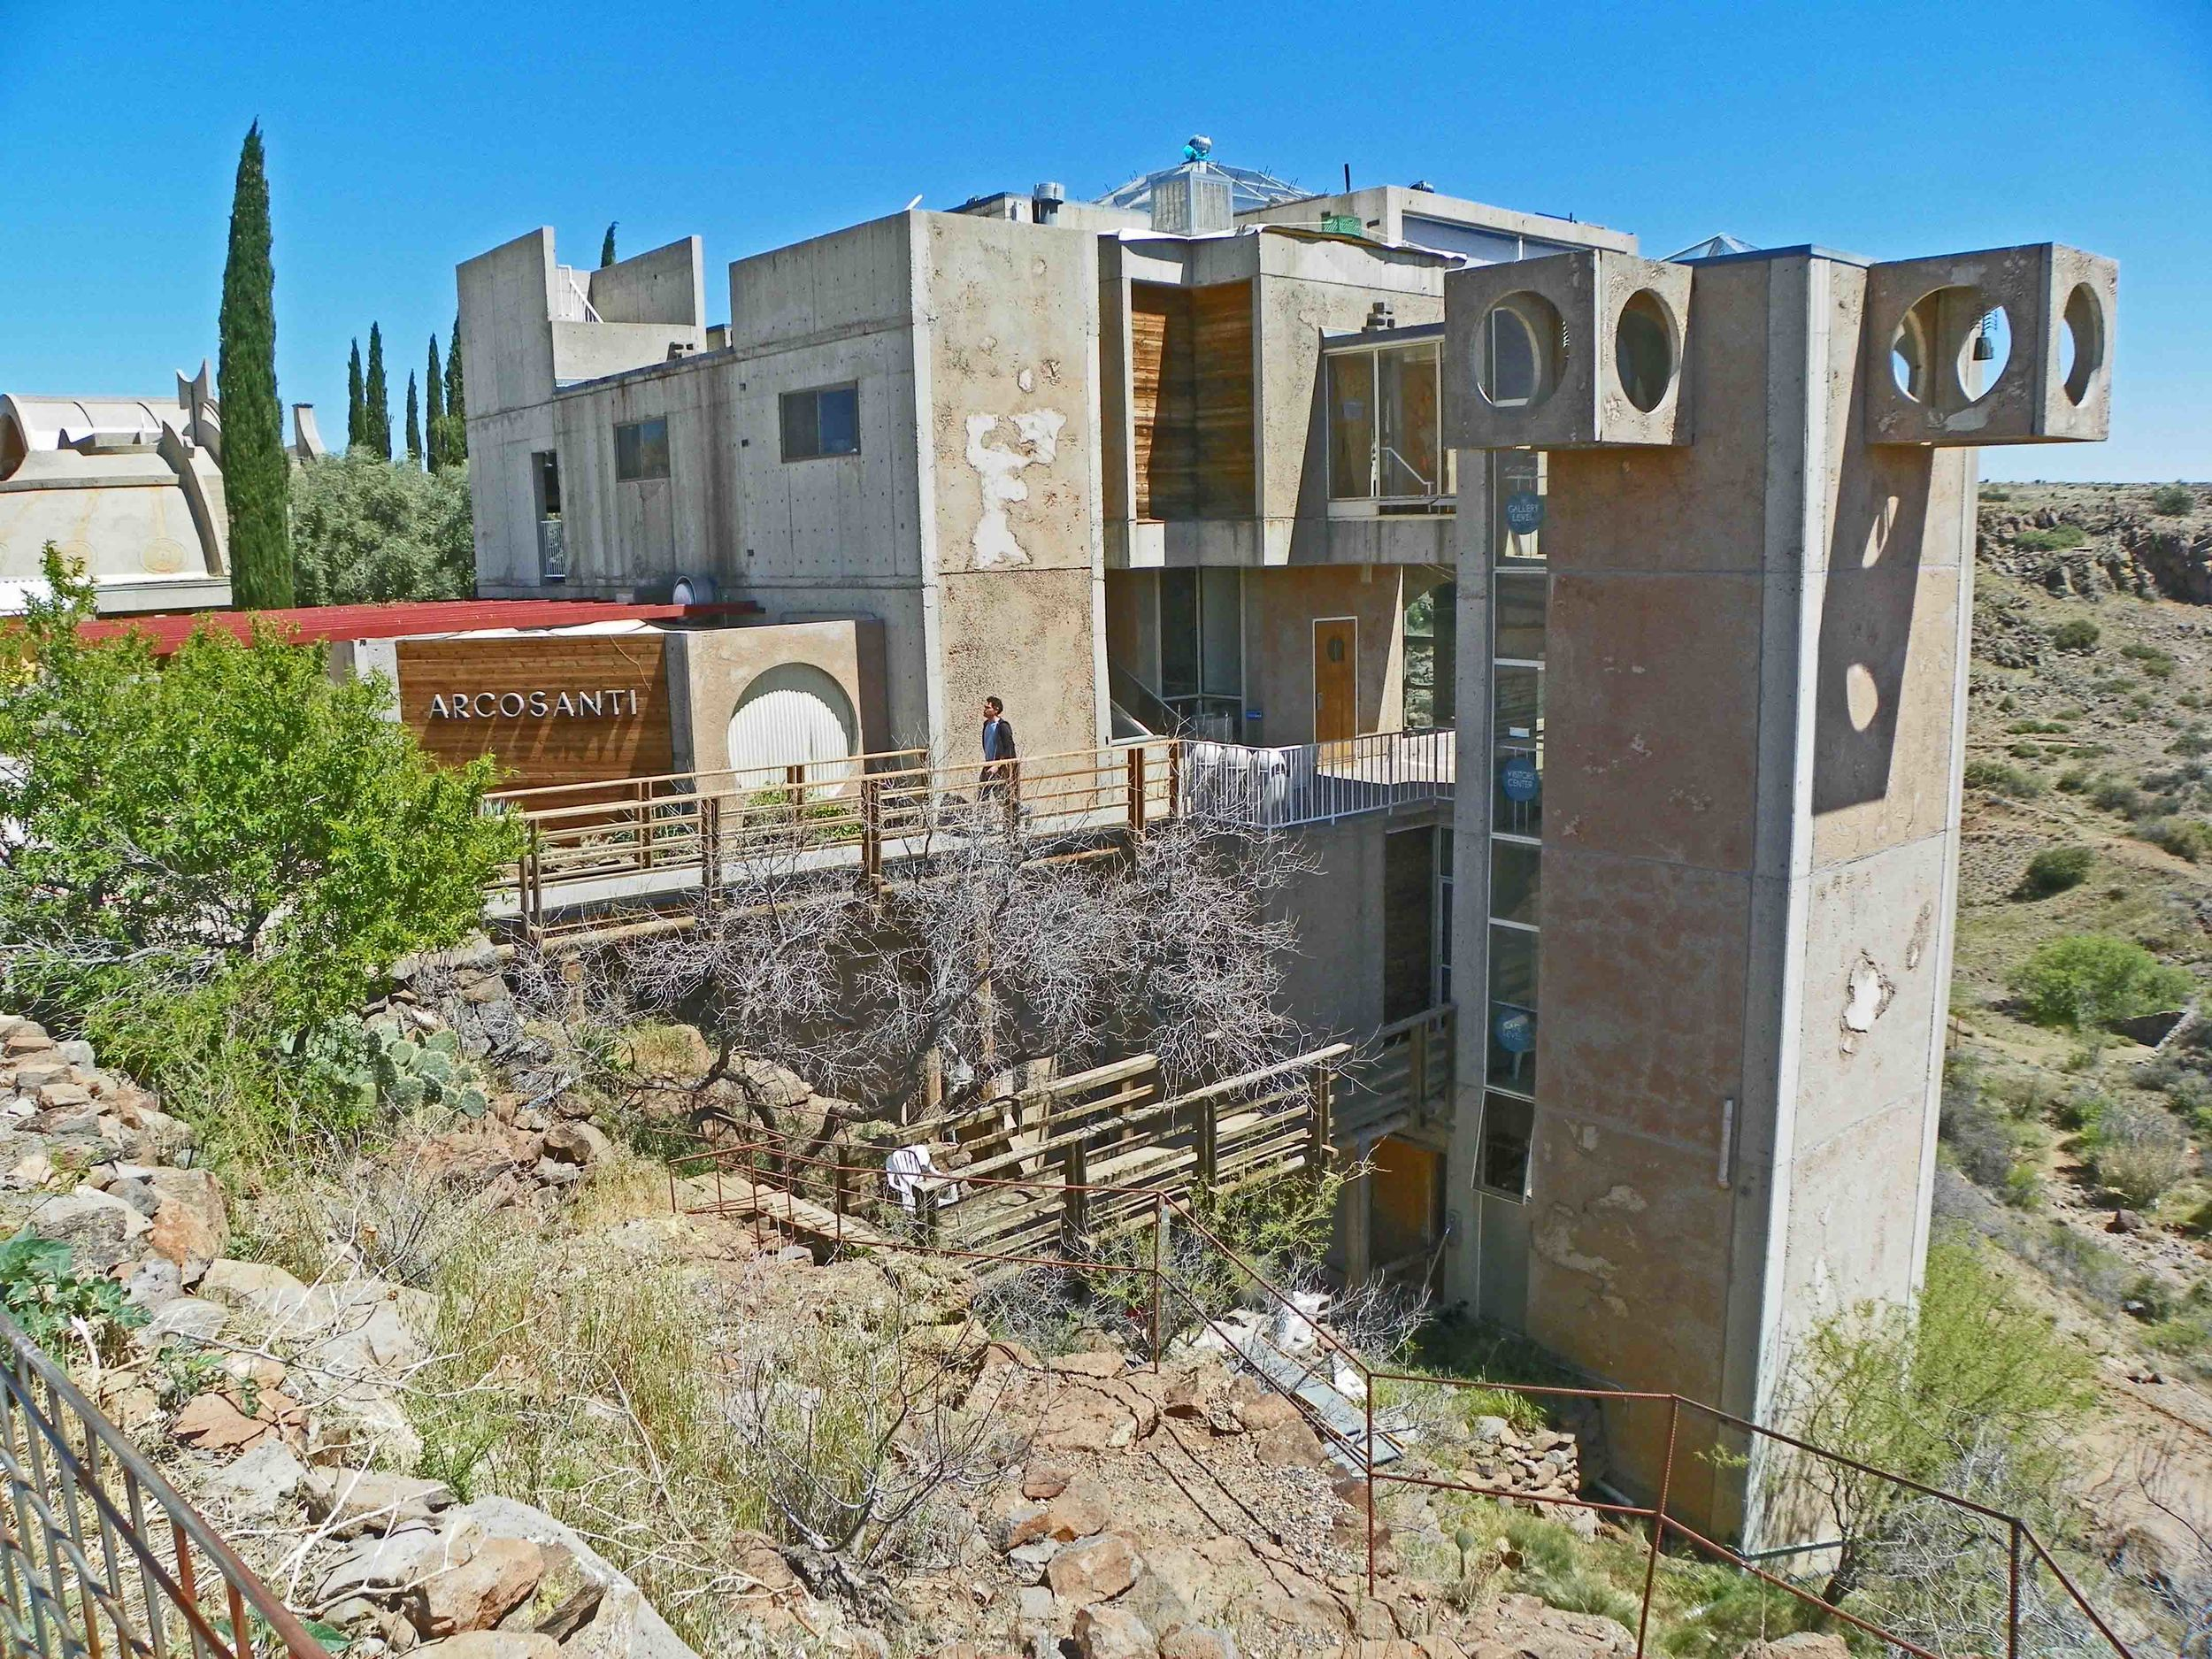 The Arcosanti visitor center sees 30-40,000 guests annually.